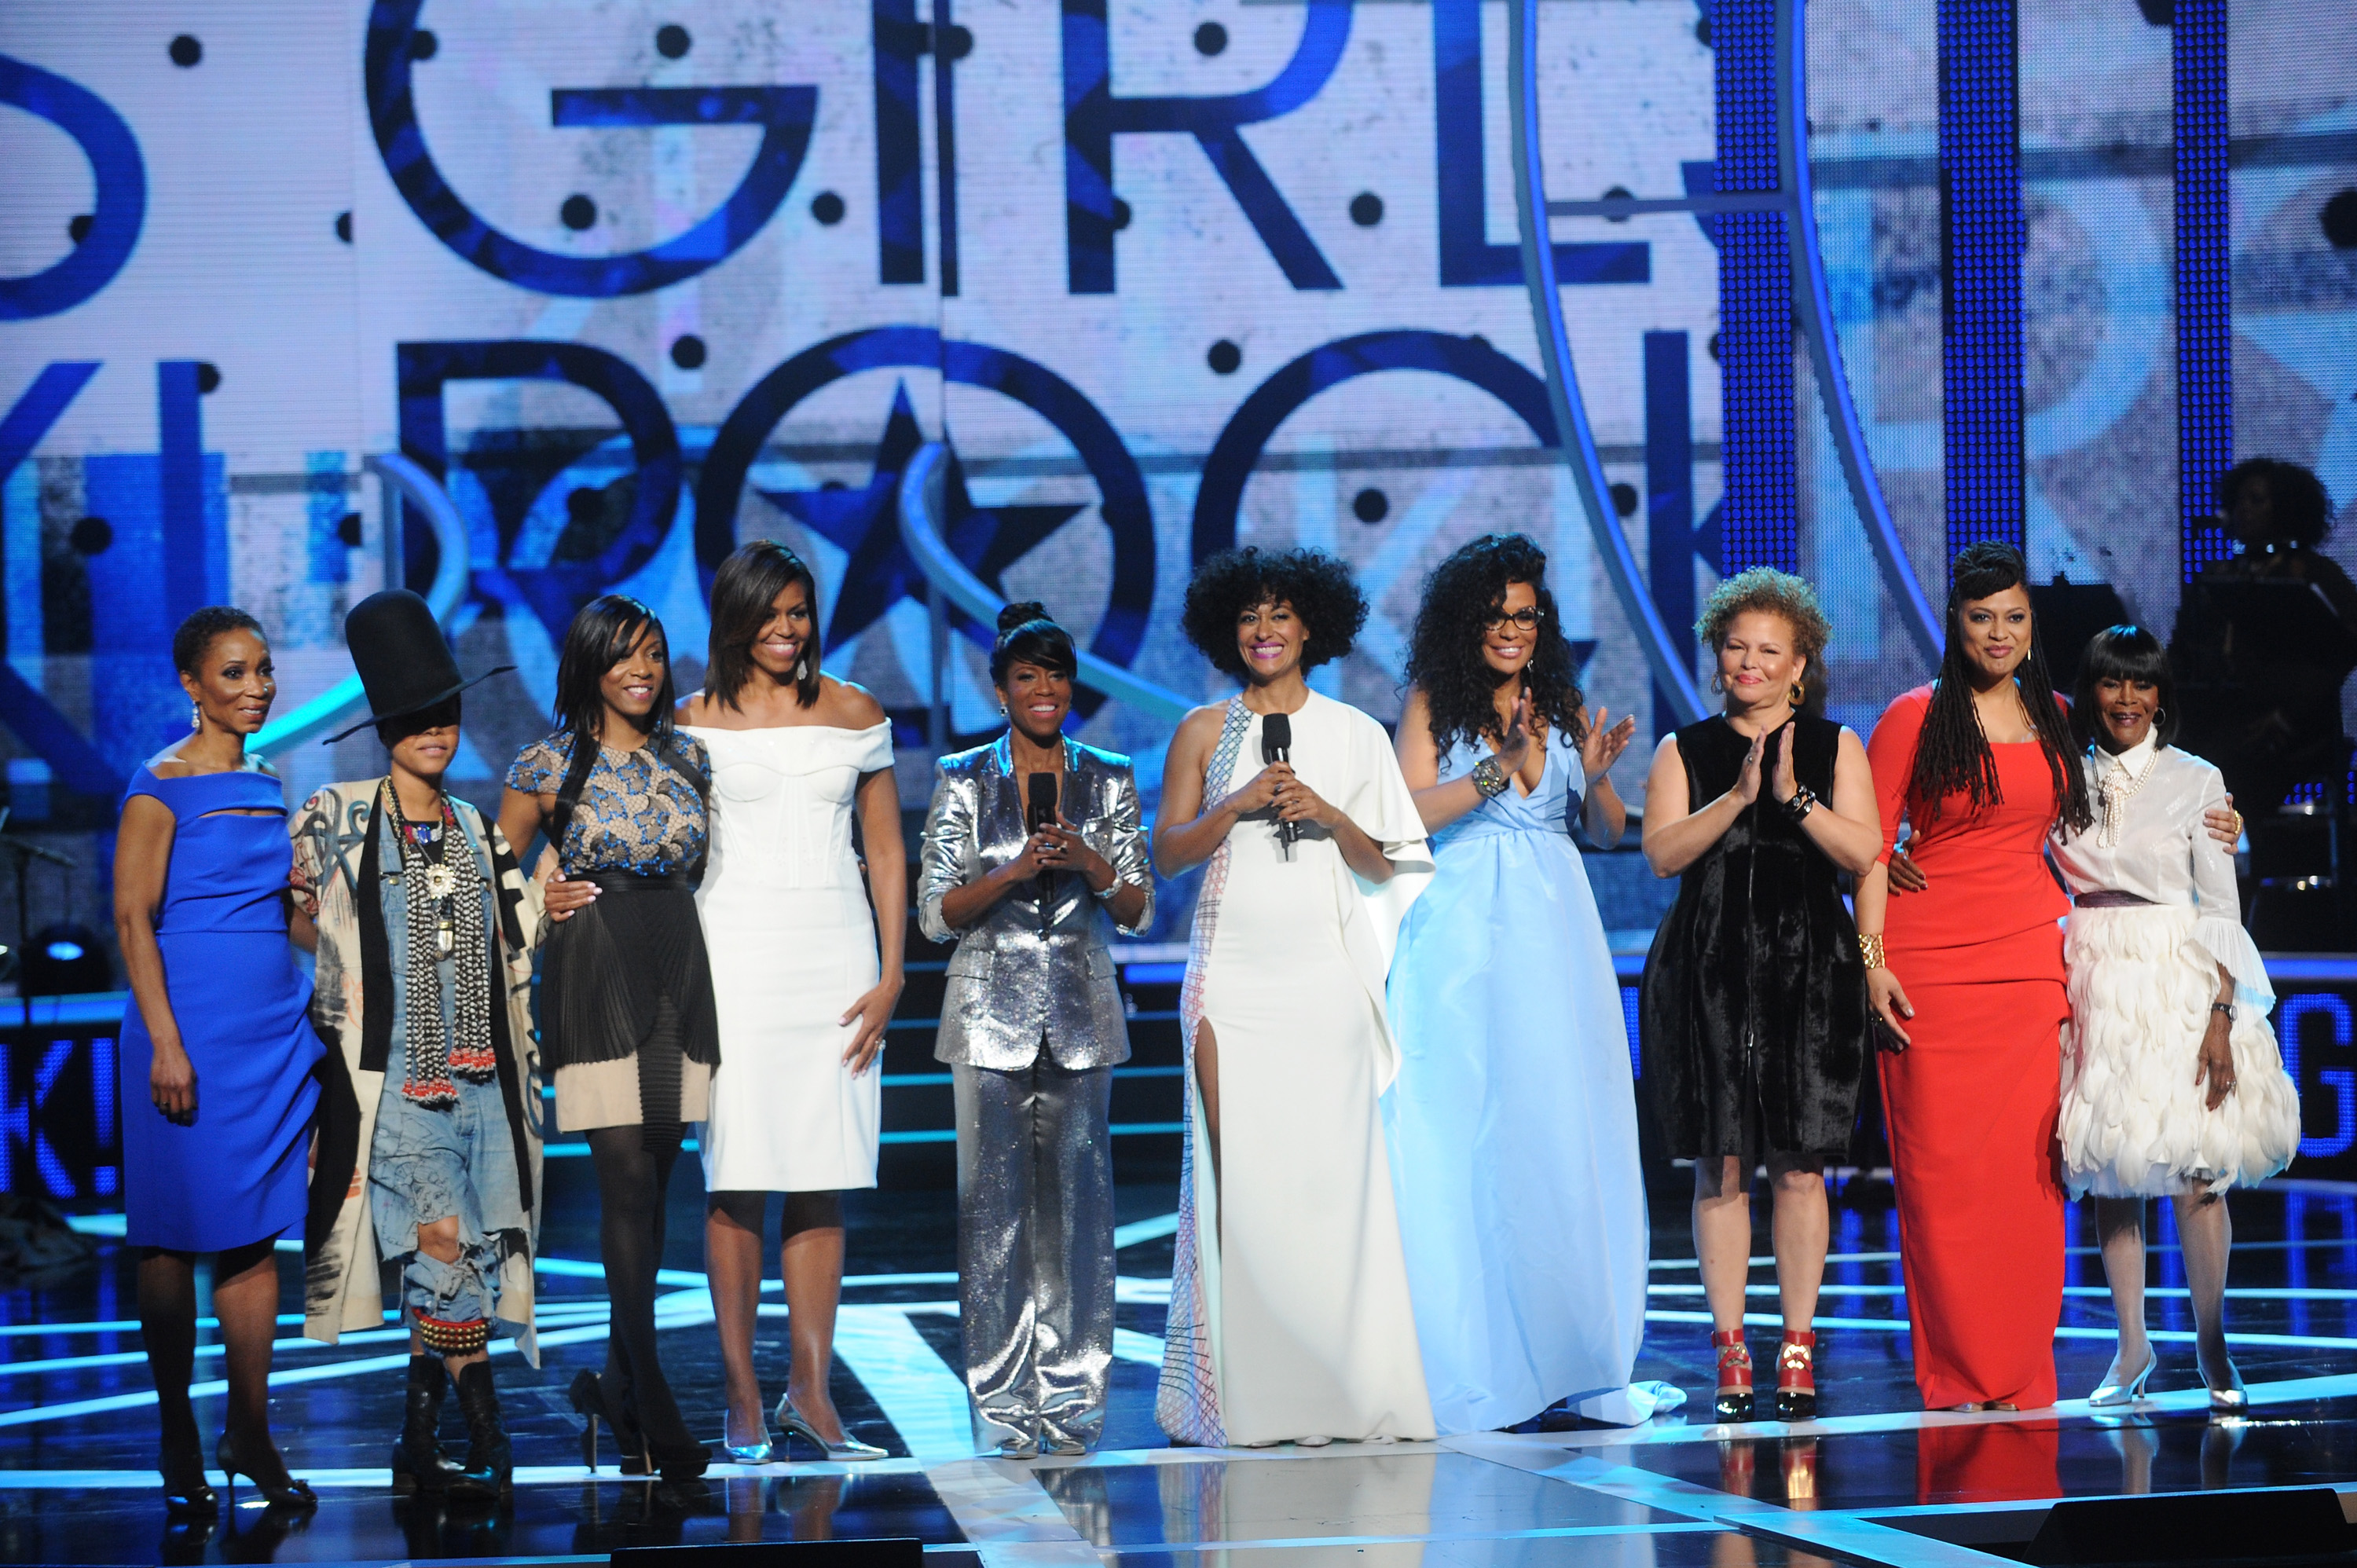 Dr. Helene Gayle, Erykah Badu, Nadia Lopez, First Lady Michelle Obama, Regina King, Tracee Ellis Ross, Beverly Bond, Debra Lee, Ava Duvernay, Cicely Tyson(l to r)/Courtesy of BET